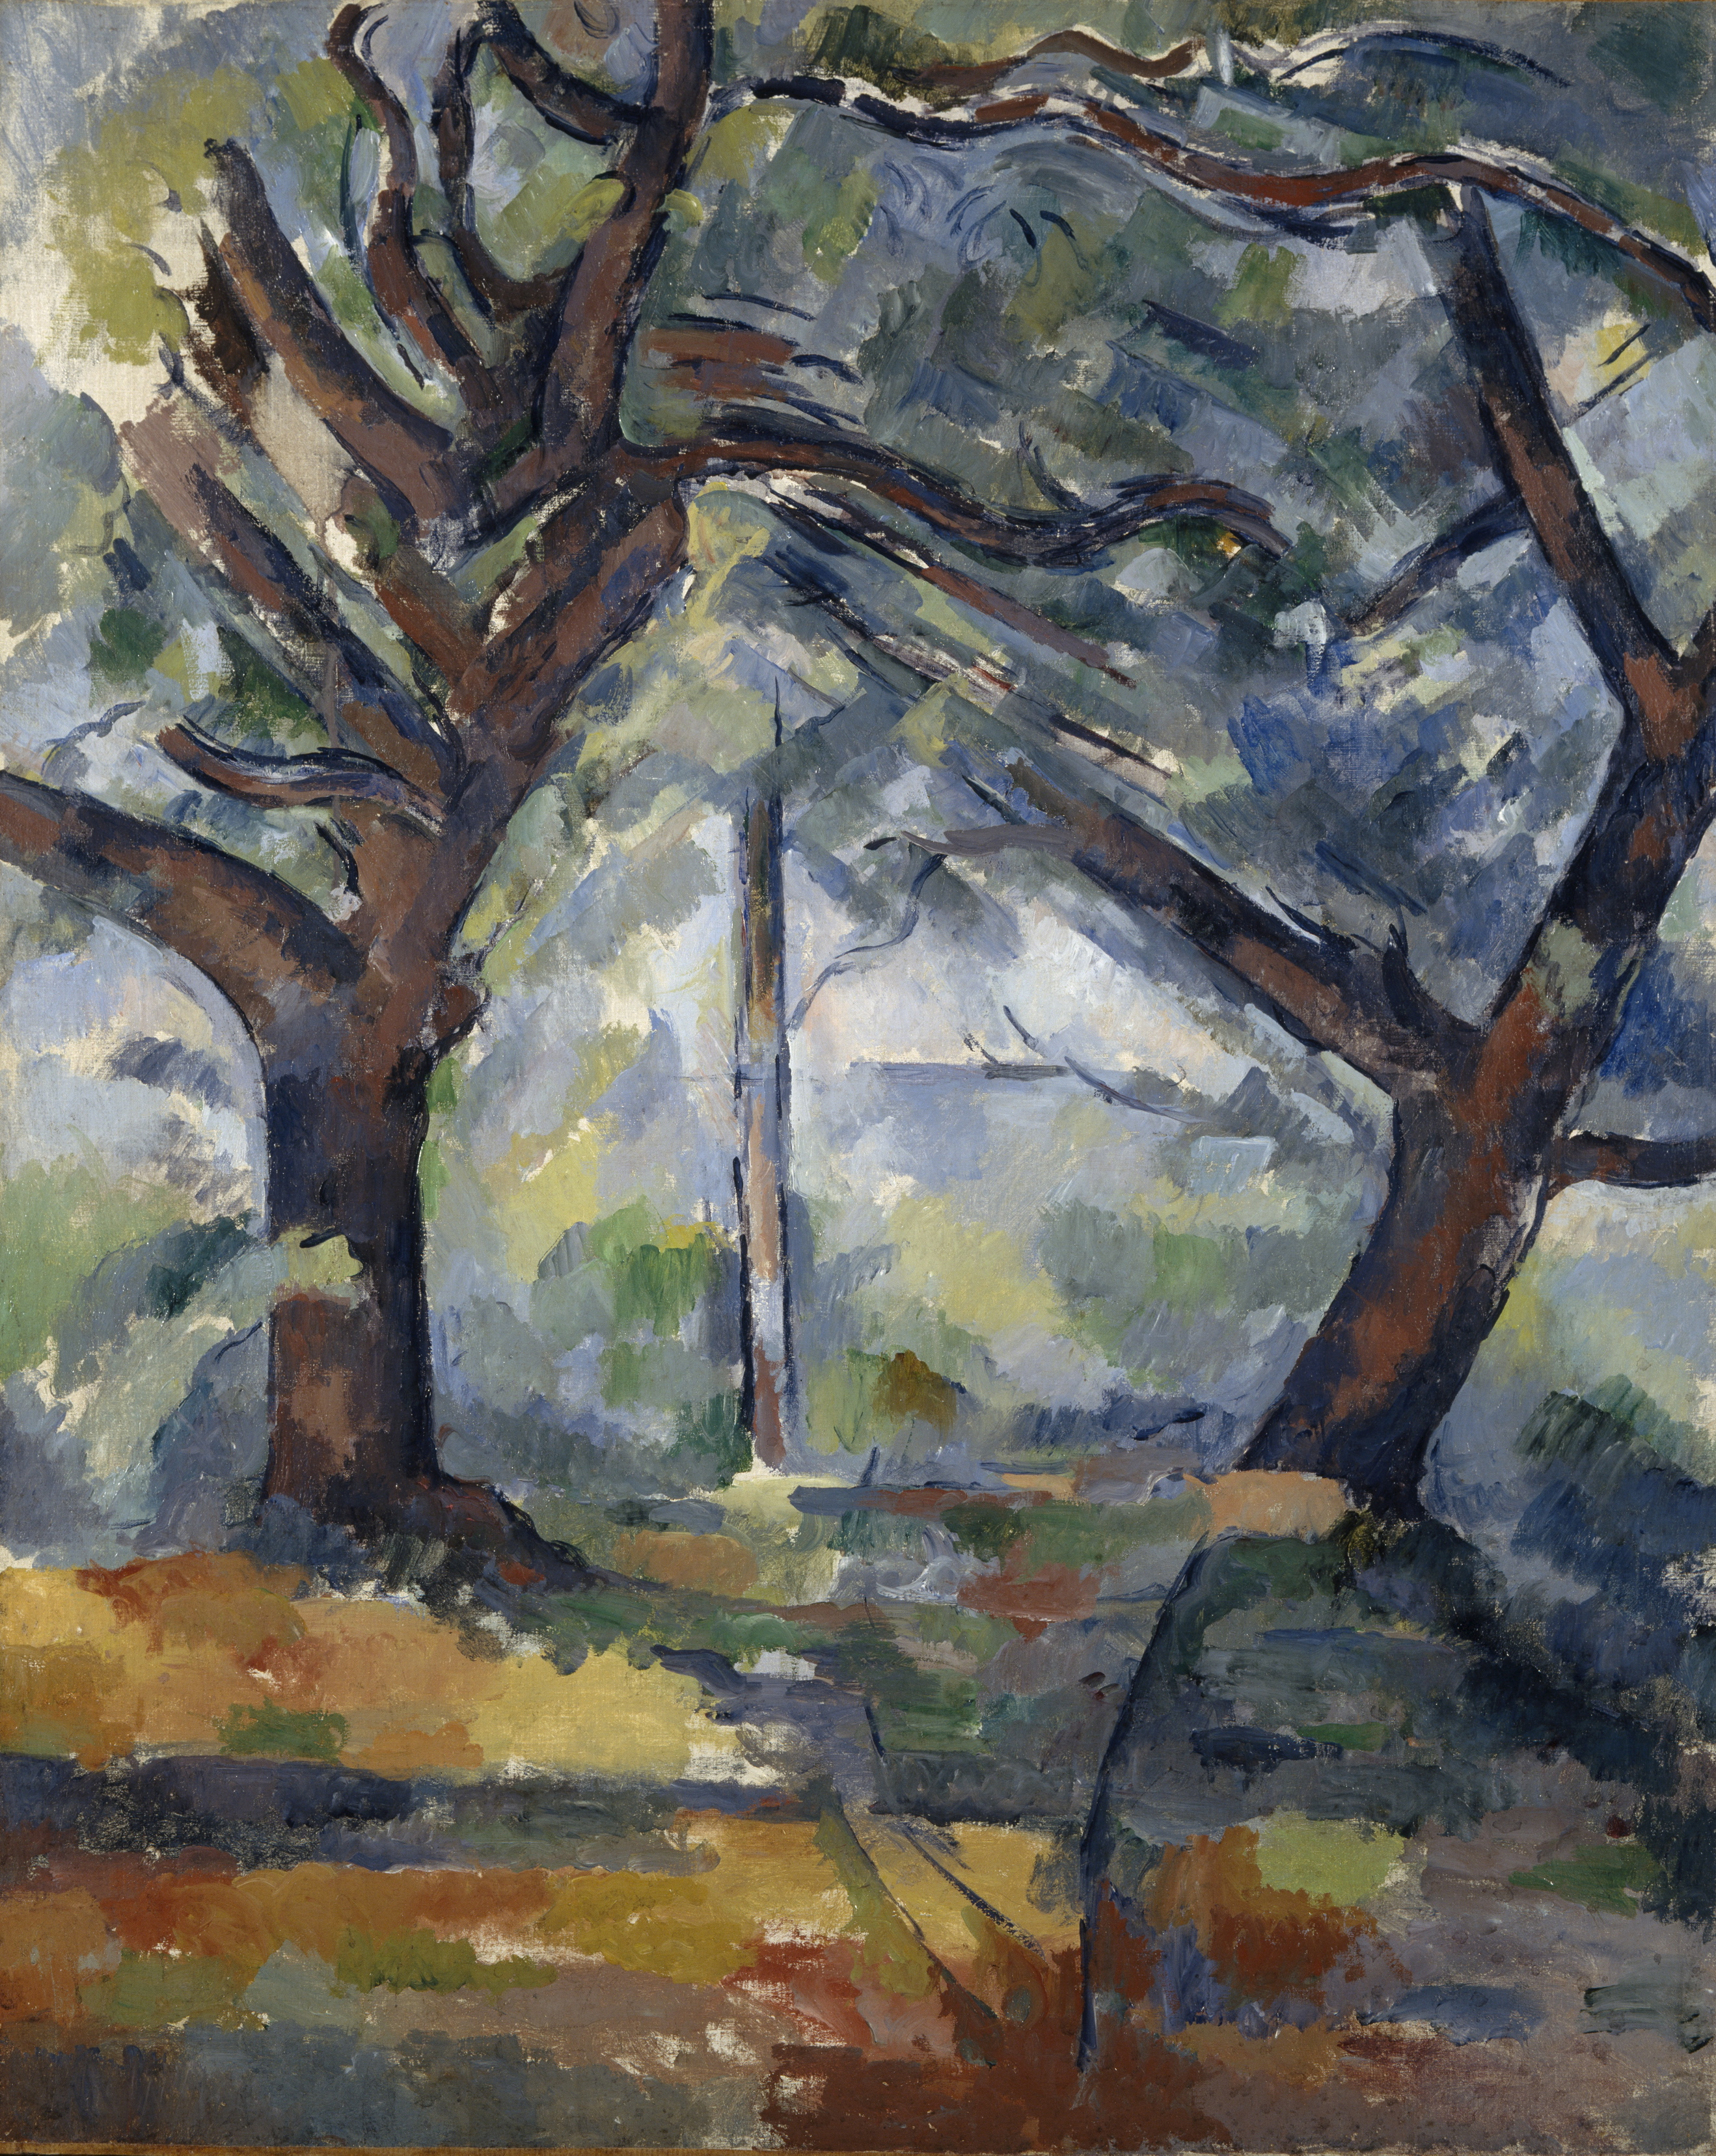 Paul Cezanne The big trees c1904 oil on canvas 81 x 65 cm Scottish National Gallery, Edinburgh © Trustees of the National Galleries of Scotland ***This image may only be used in conjunction with editorial coverage of The Greats exhibition, 24 Oct 2015 - 14 Feb 2016, at the Art Gallery of New South Wales. This image may not be cropped or overwritten. Prior approval in writing required for use as a cover. Caption details must accompany reproduction of the image. *** Media contact: Lisa.Catt@ag.nsw.gov.au *** Local Caption *** ***This image may only be used in conjunction with editorial coverage of The Greats exhibition, 24 Oct 2015 - 14 Feb 2016, at the Art Gallery of New South Wales. This image may not be cropped or overwritten. Prior approval in writing required for use as a cover. Caption details must accompany reproduction of the image. *** Media contact: Lisa.Catt@ag.nsw.gov.au